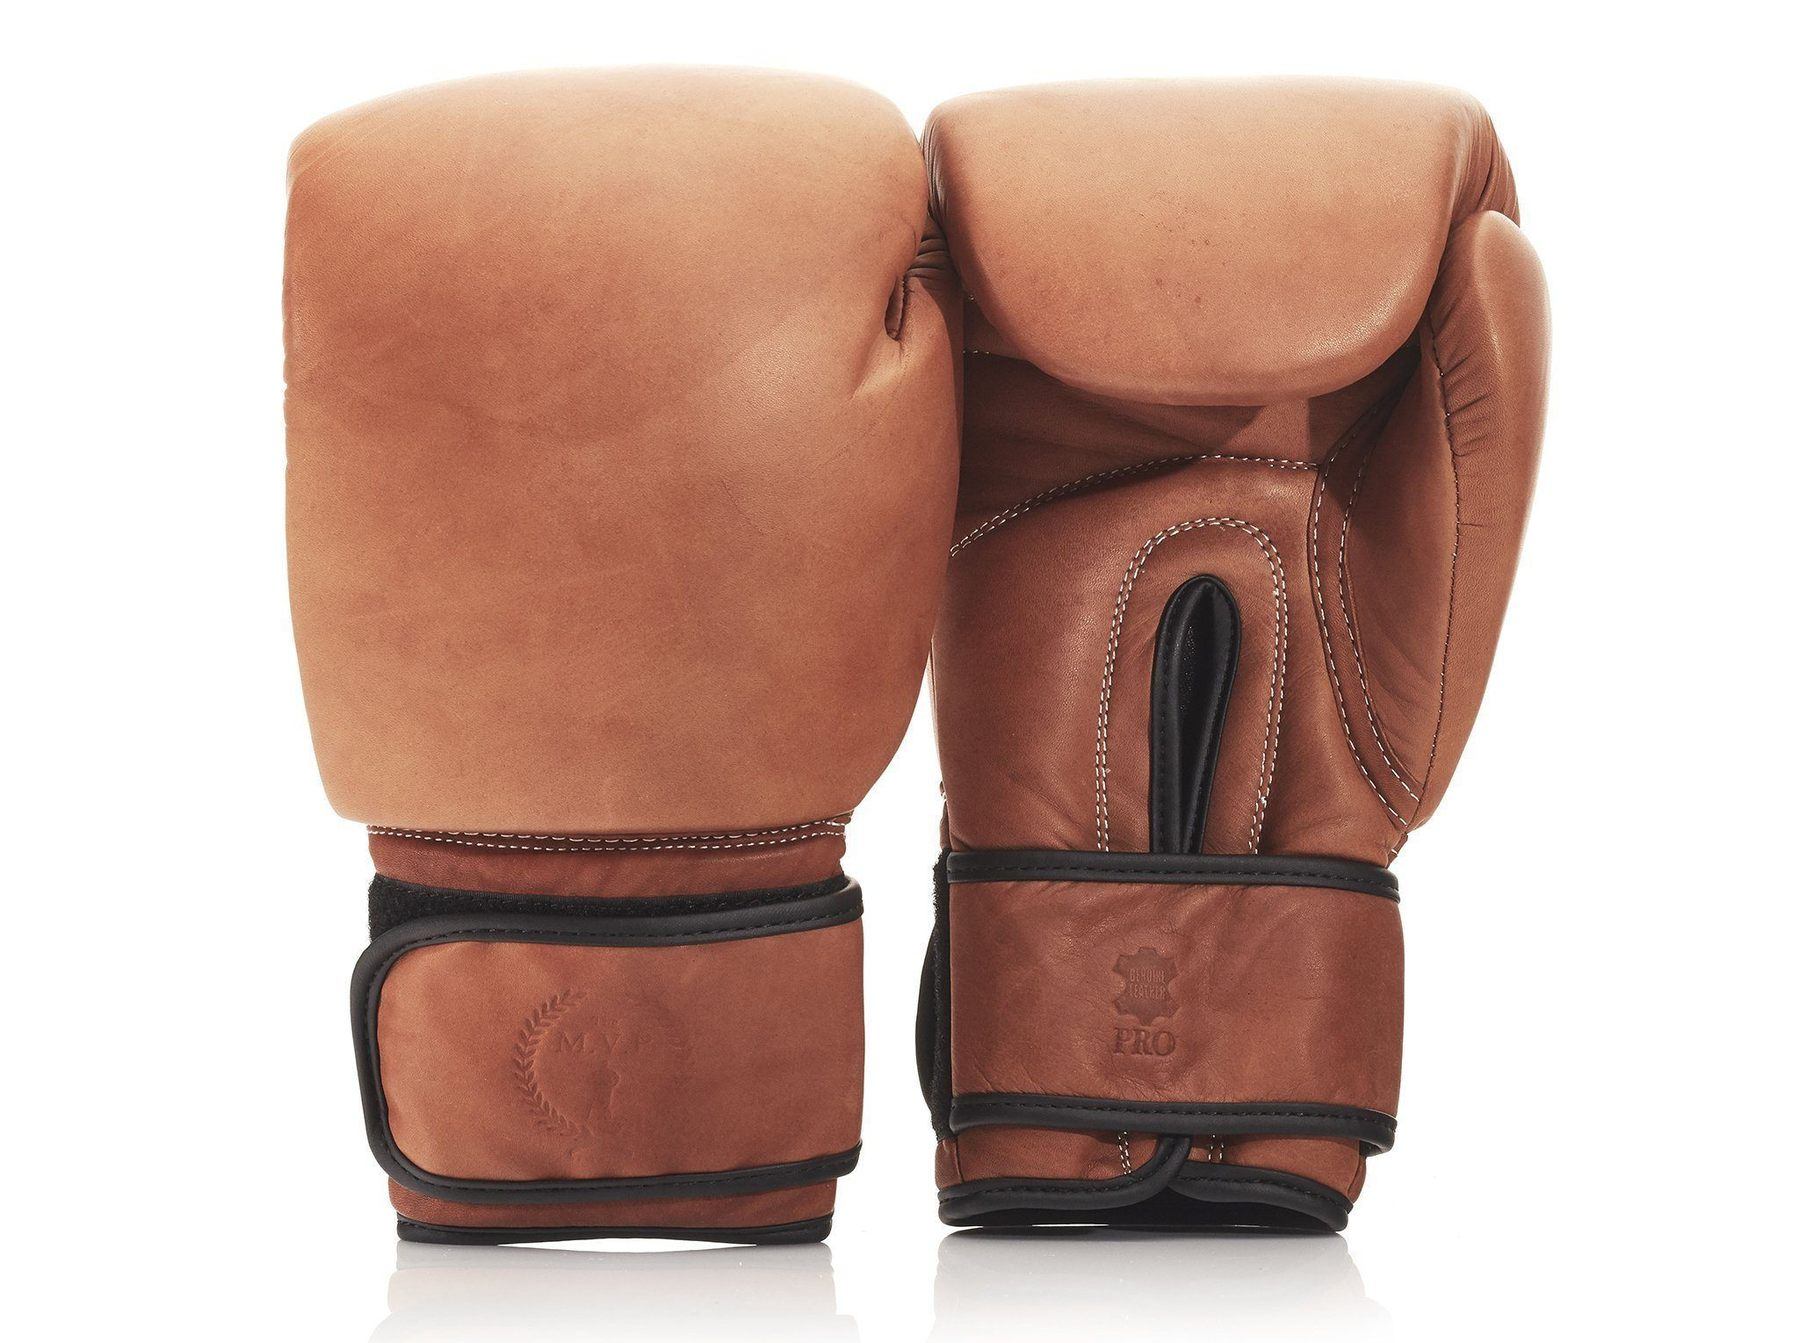 Heritage Vintage Brown Leather Boxing Package   The MVP